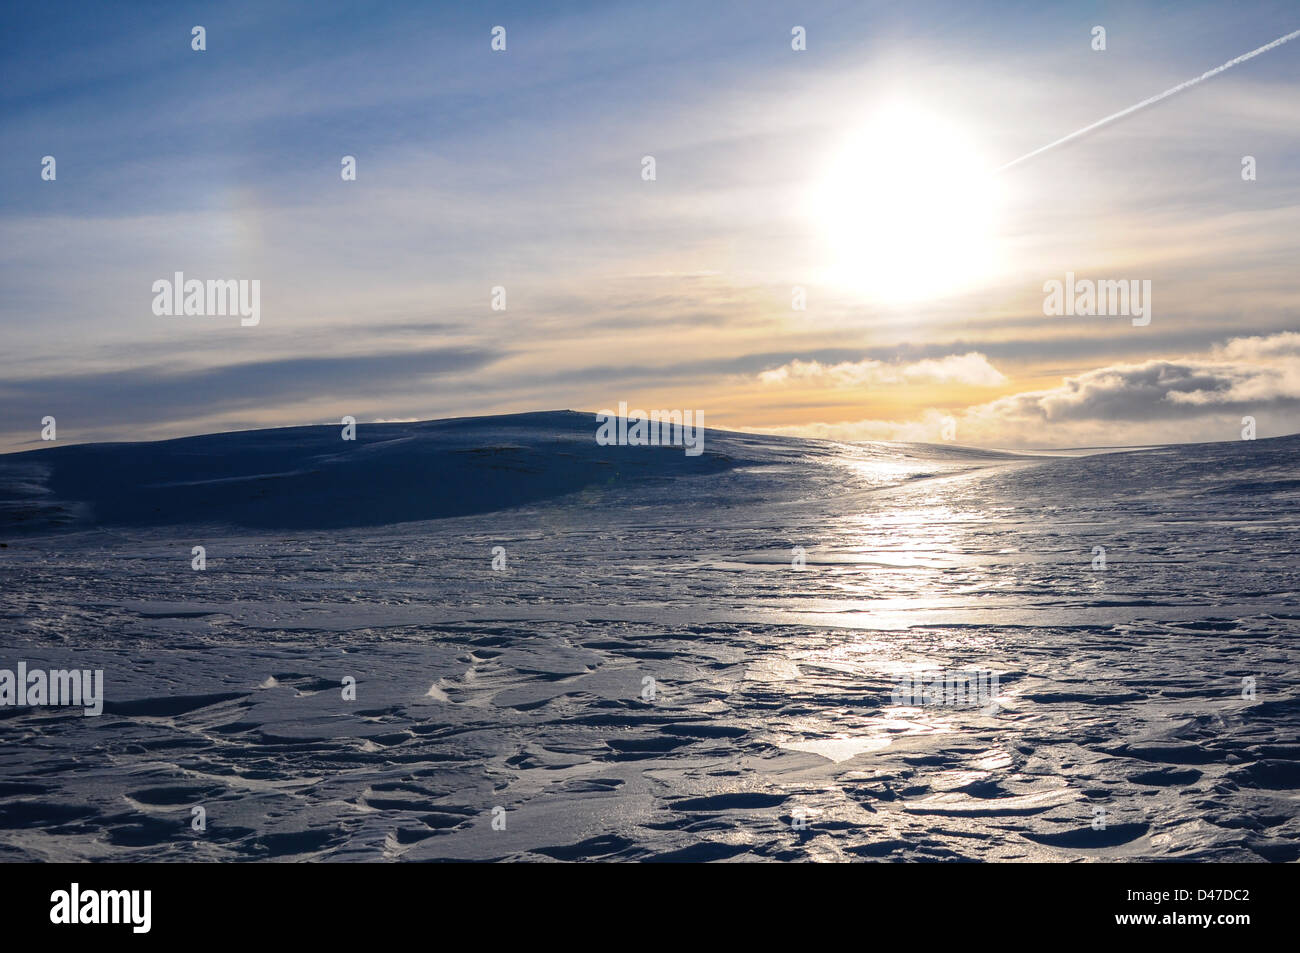 Evening fall upon Hardangervidda with a Storm approaching from the West - Stock Image